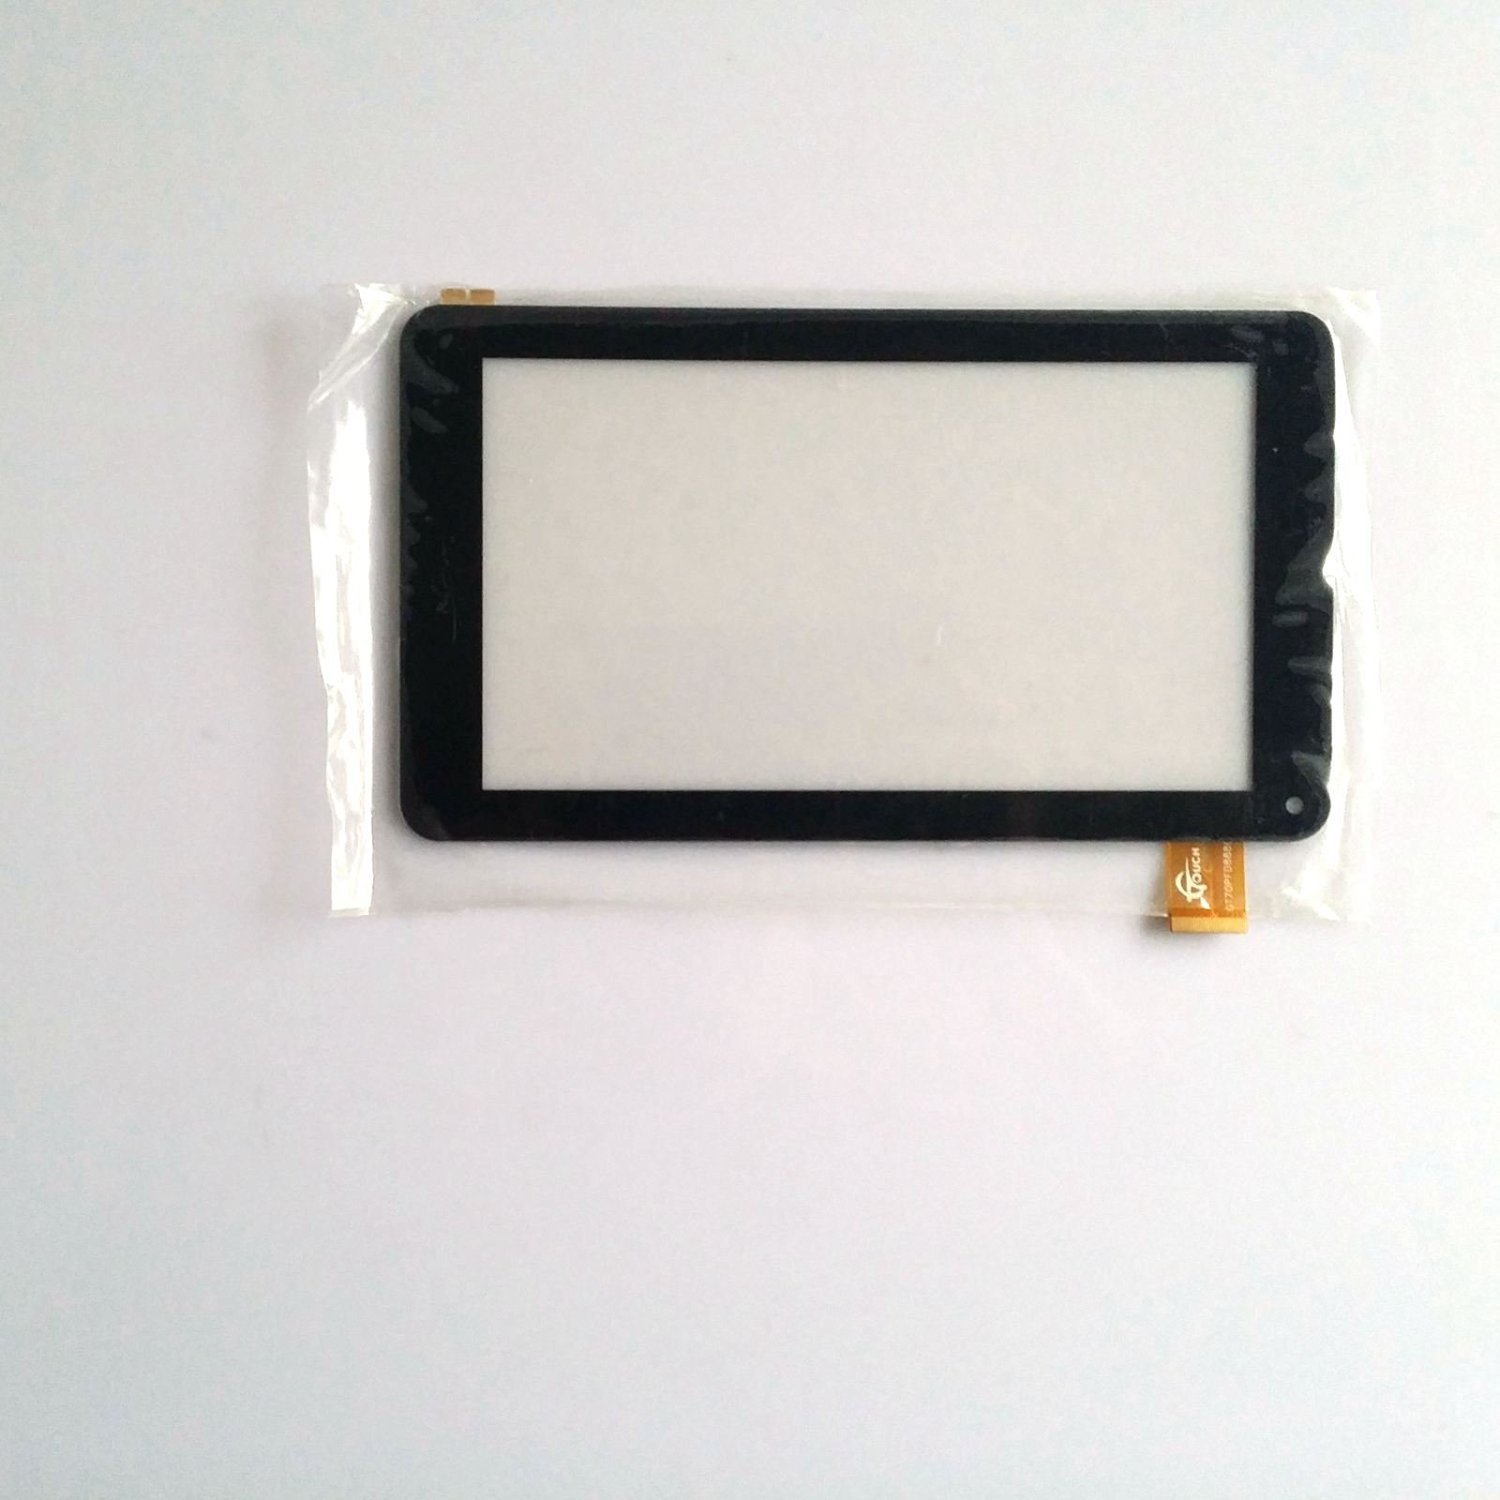 EUTOPING New 7 inch GT70PFD8880 touch screen panel Digitizer for tablet